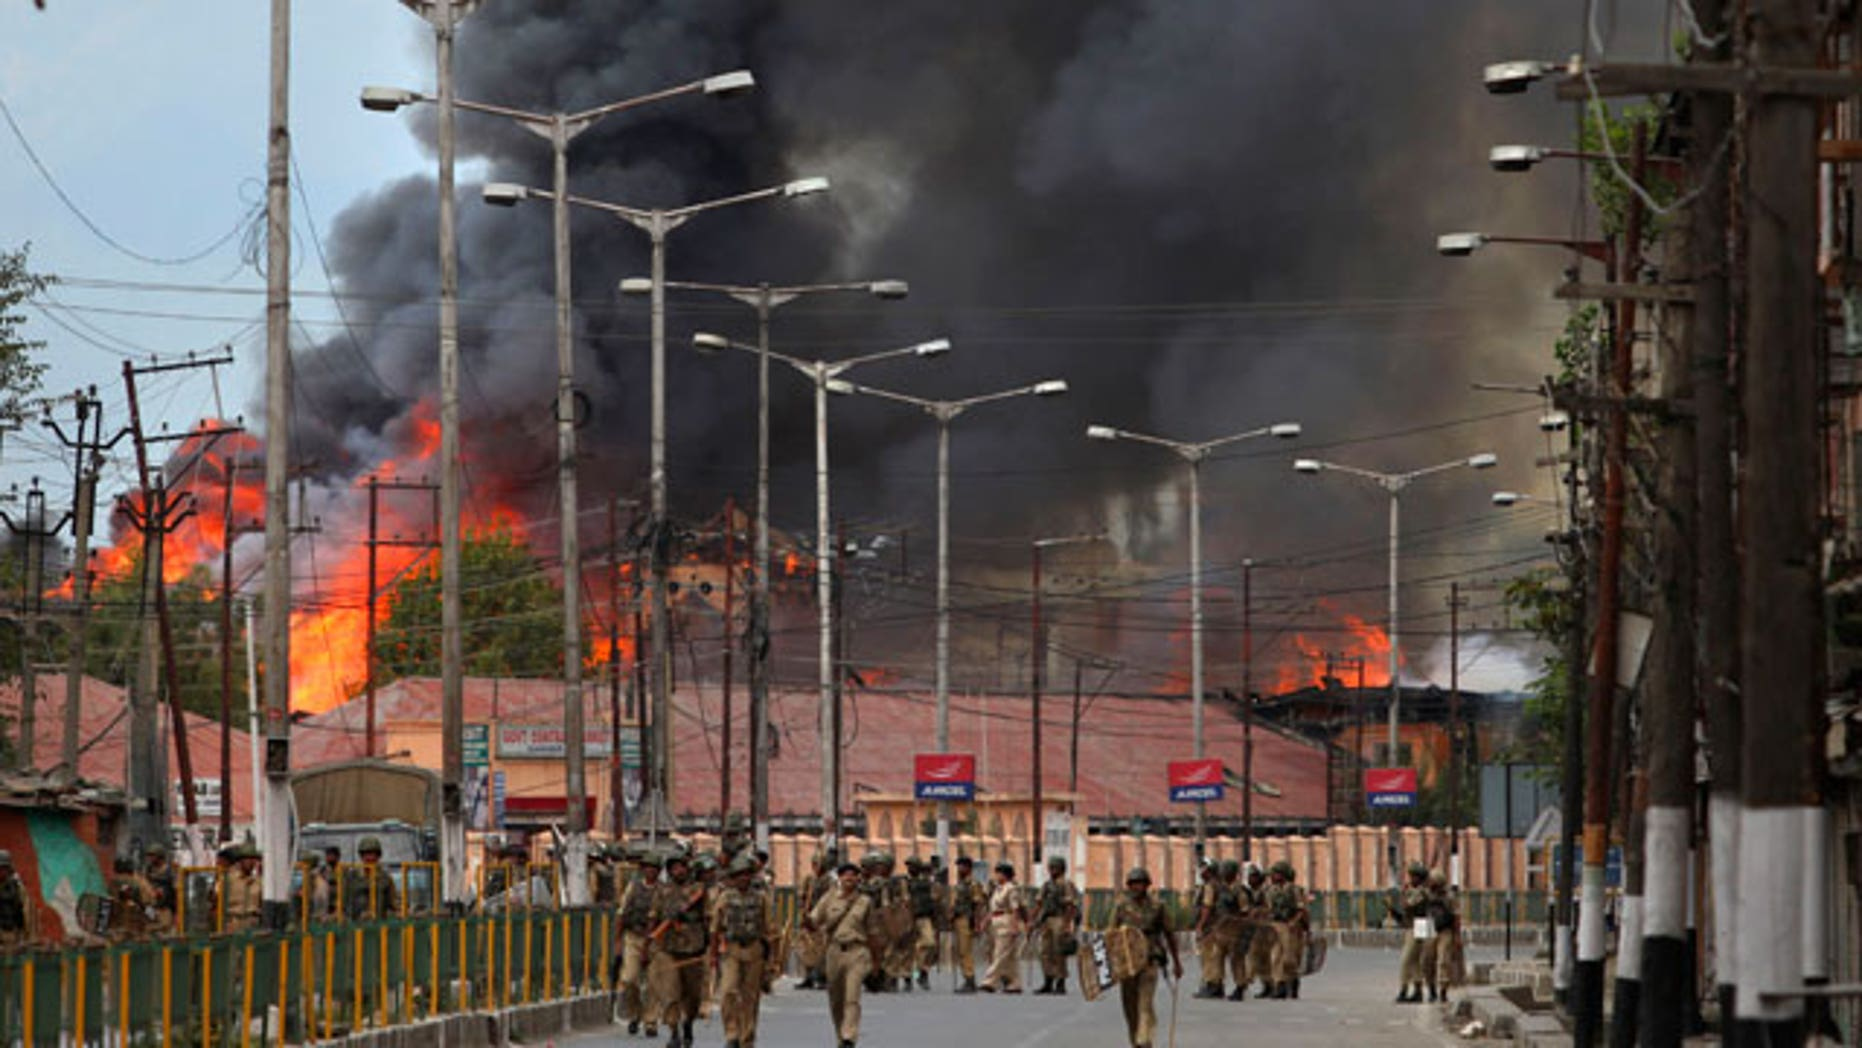 Indian forces patrol as flames rise from a government building set on fire by protesters in Srinagar, India, Saturday, Sept. 11, 2010. Police fired warning shots and tear gas to disperse hundreds of demonstrators who attacked a police post and burned government offices in Kashmir on Saturday, as tens of thousands of people took to the streets to protest Indian rule in the Himalayan region, officials said.